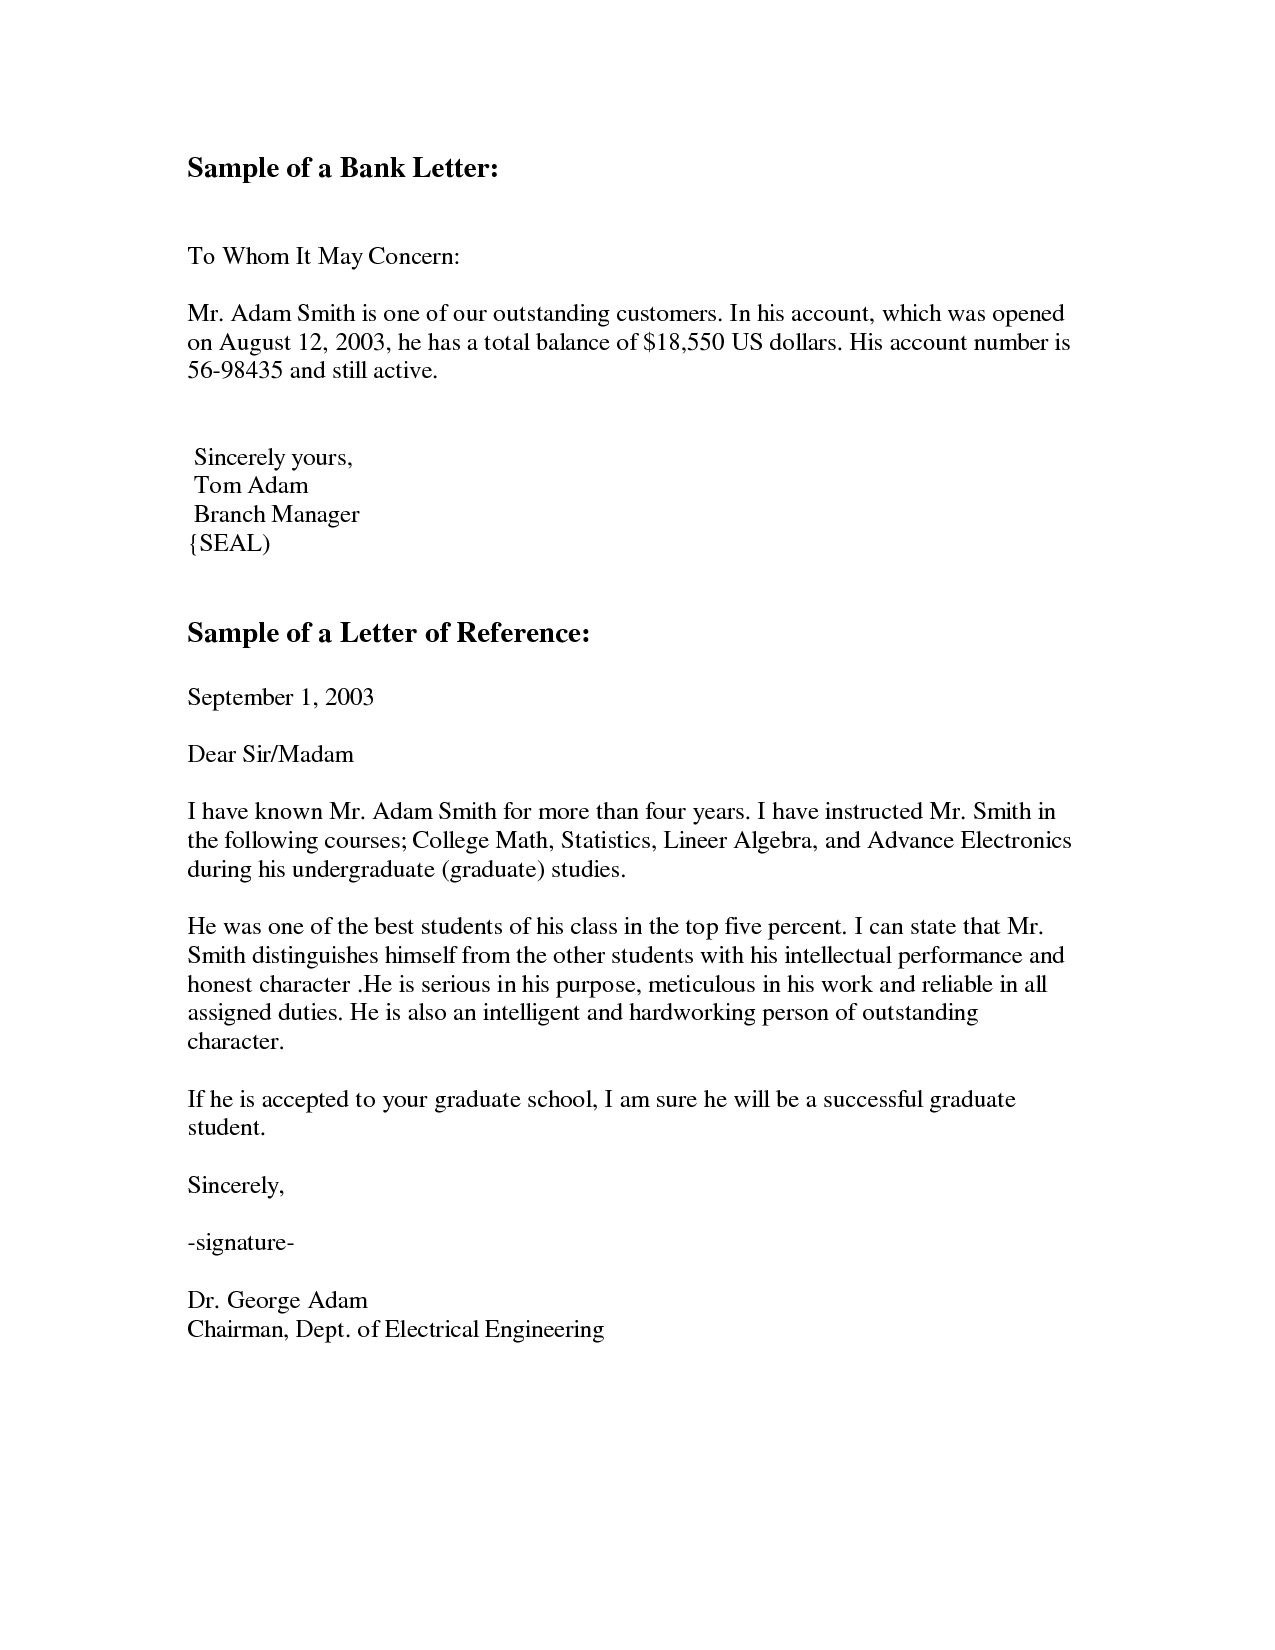 valentine letter template Collection-Formal Letter Template Samples 16-g